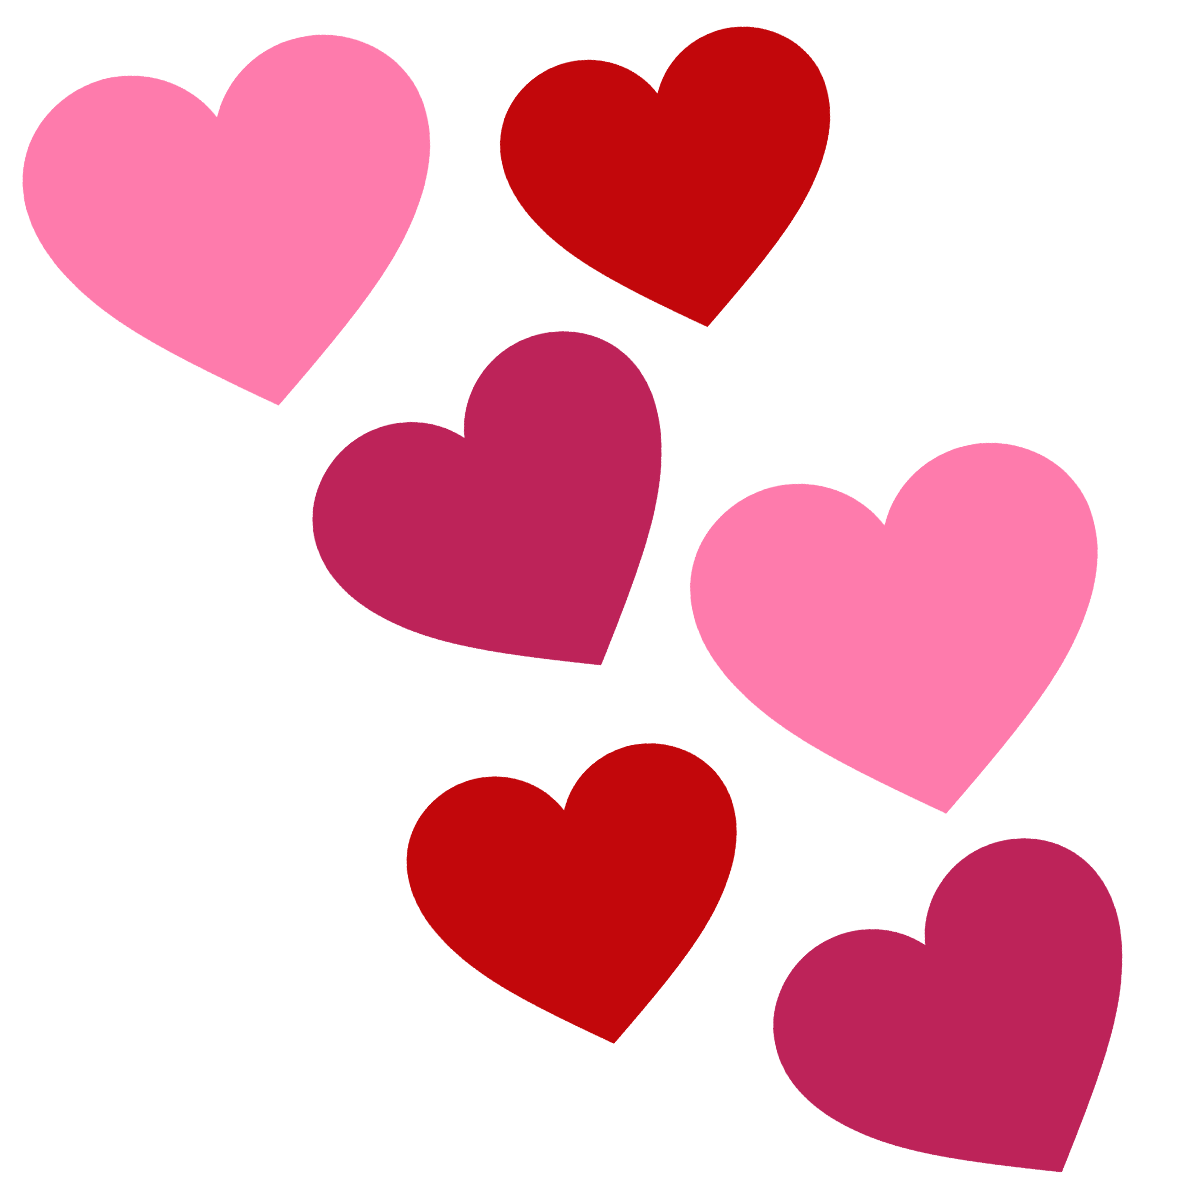 Free Animated Valentines Day Clipart-Free Animated Valentines Day Clipart-9